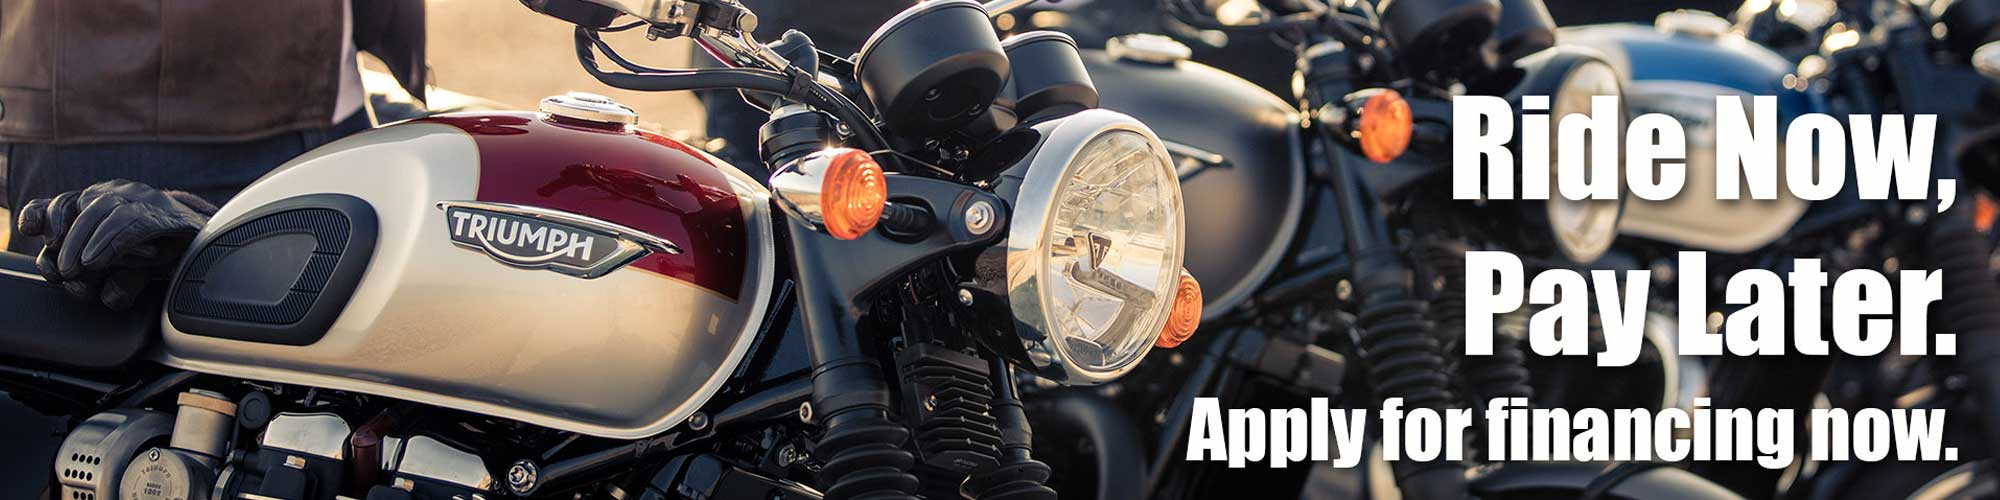 Apply for Financing Today at Used Bikes Direct